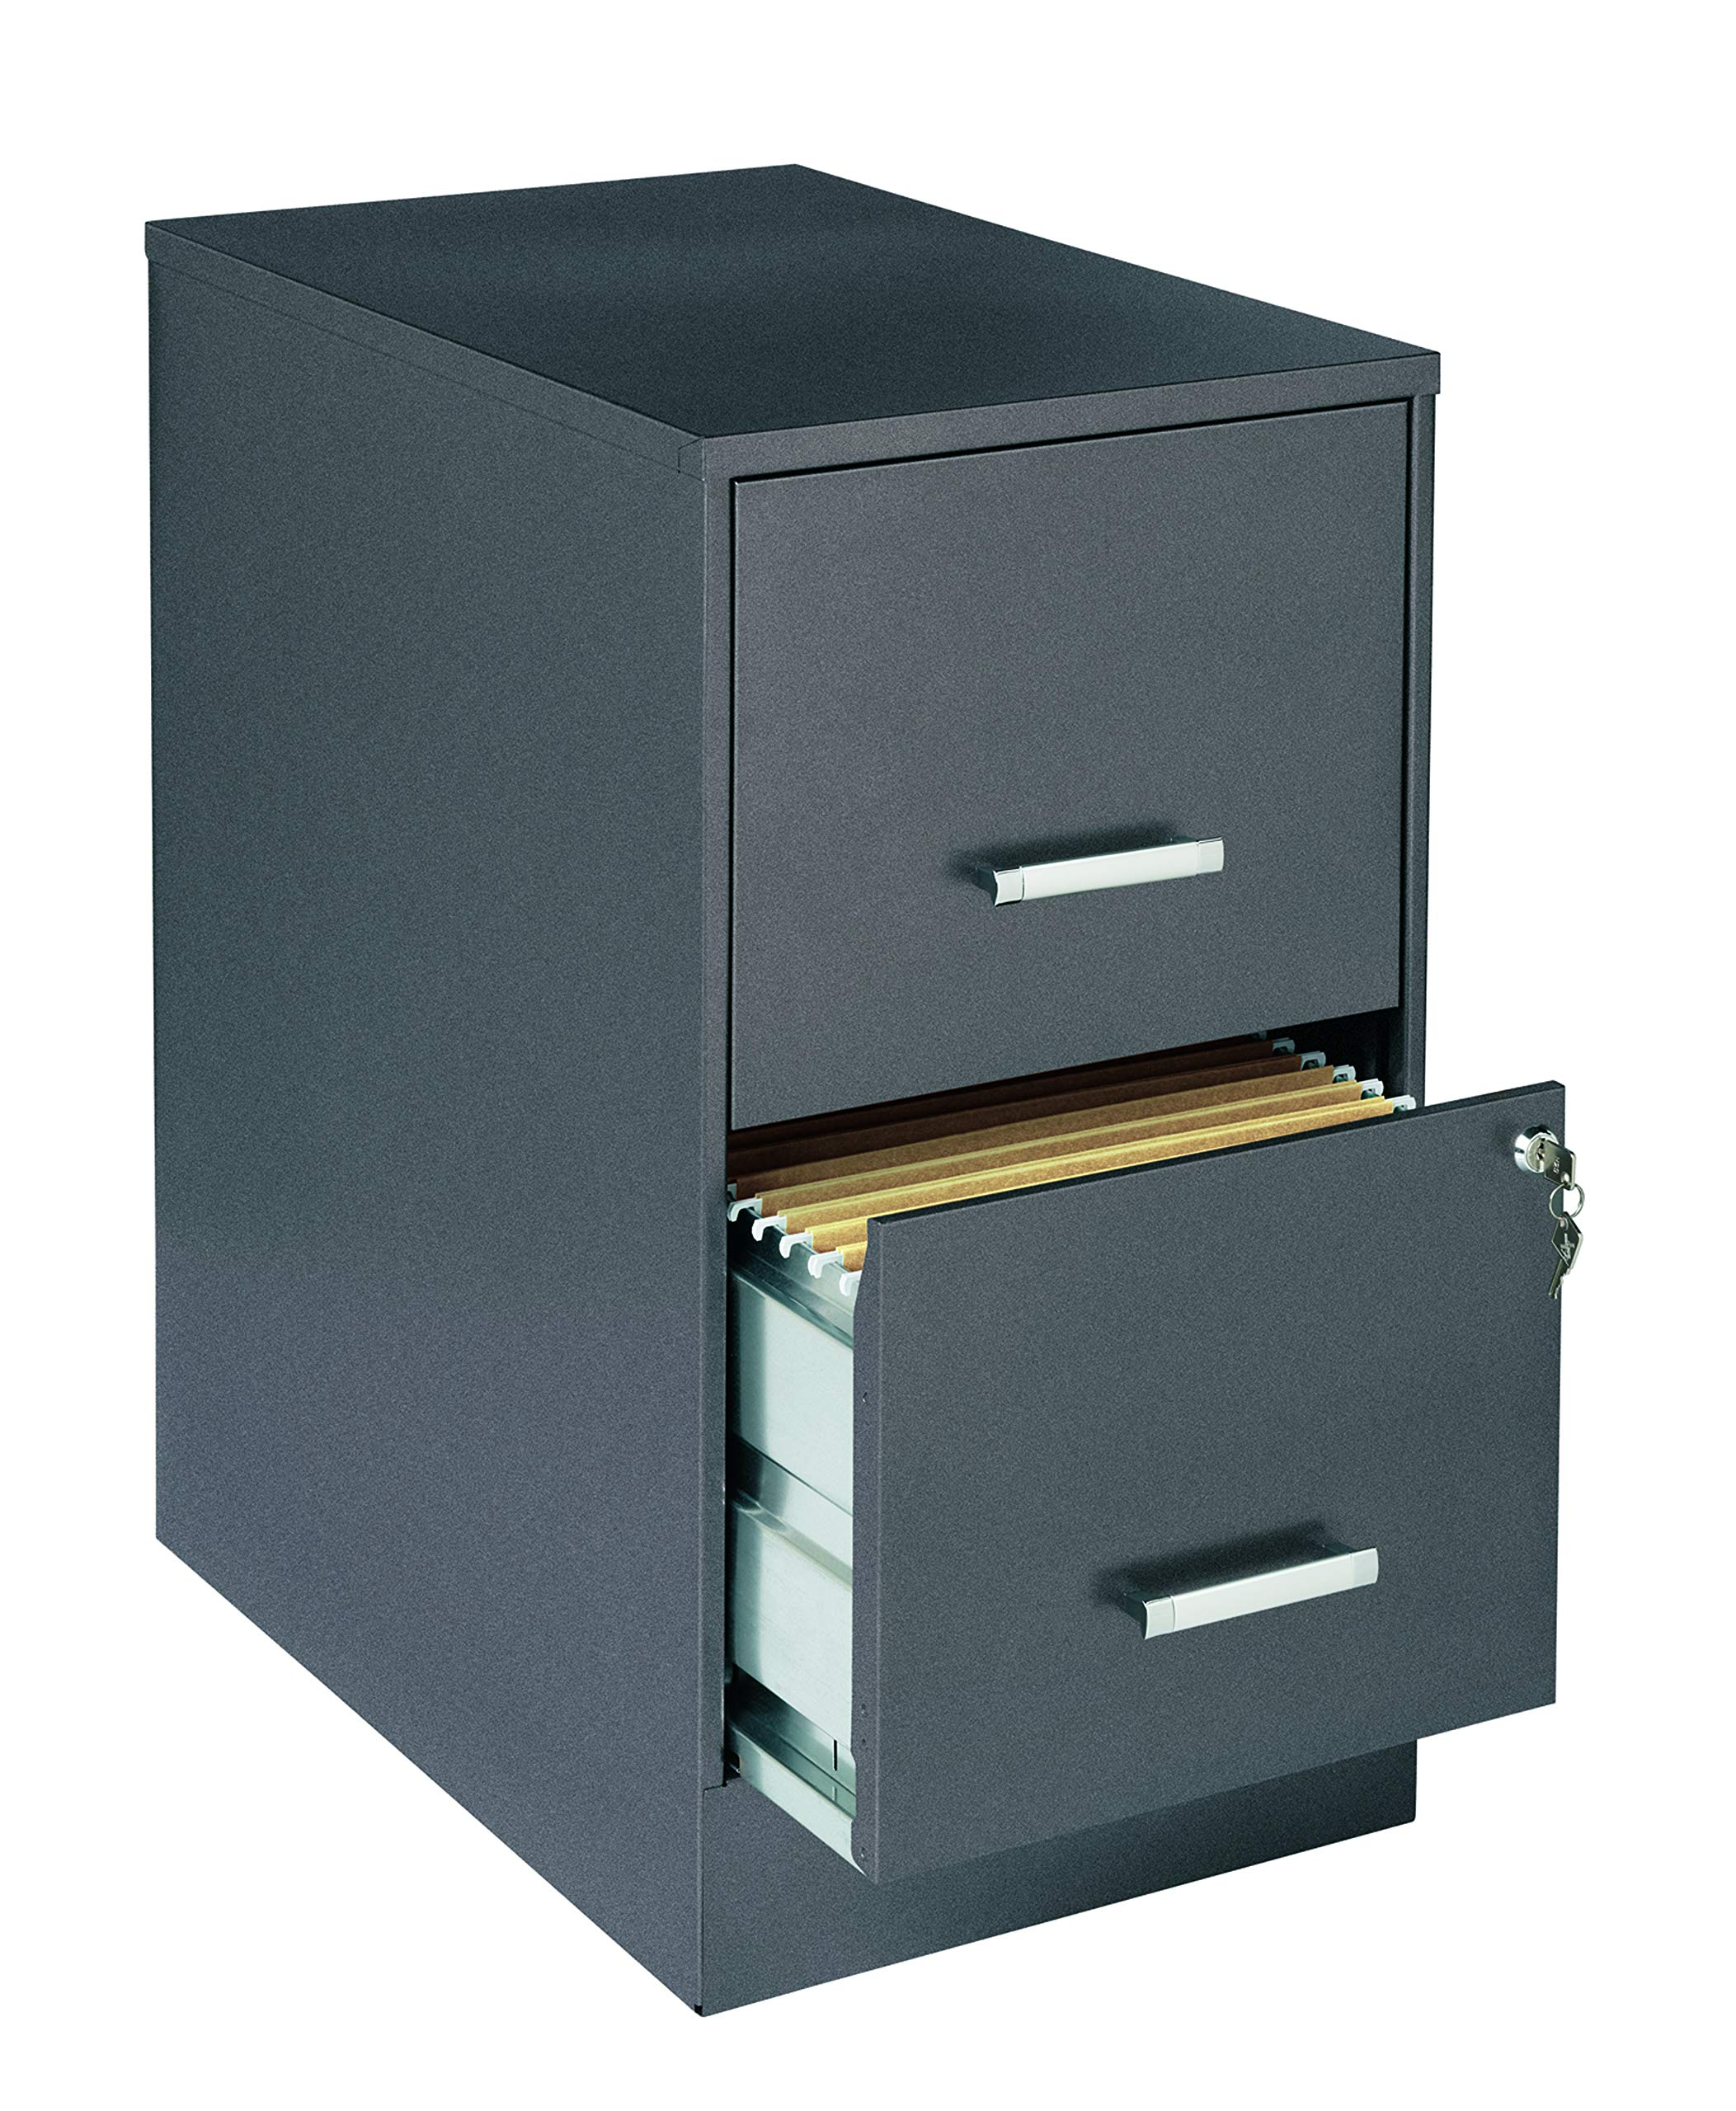 Lorell SOHO 22'' 2-Drawer File Cabinet LLR16871 by Lorell